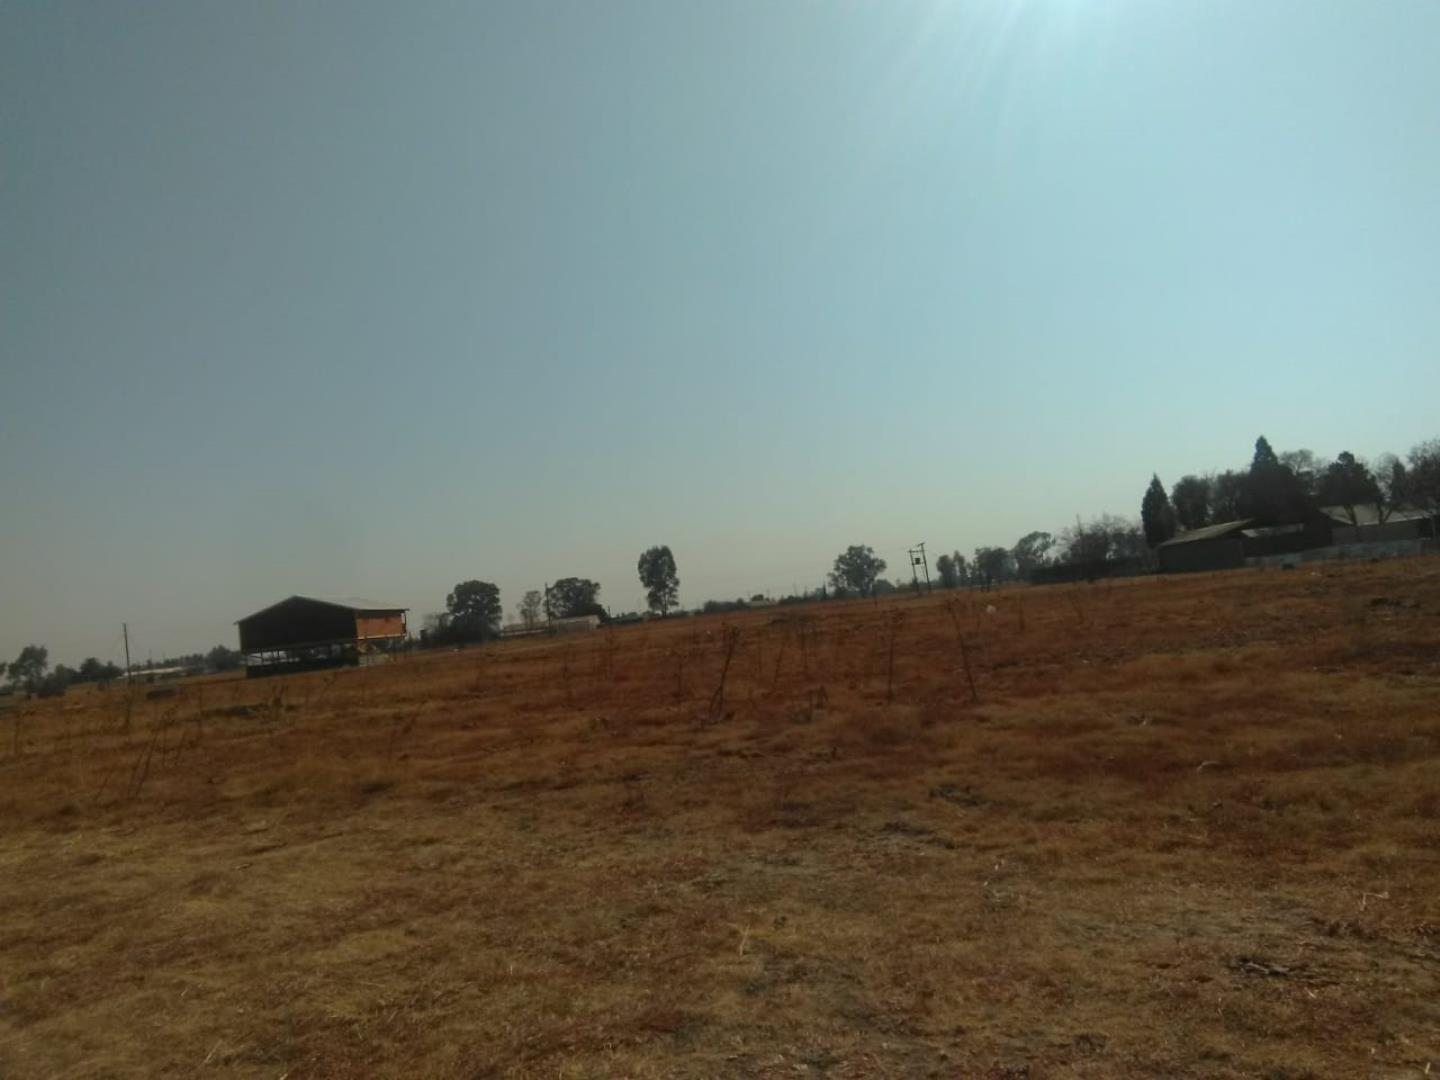 Vacant Land for Sale in Nanescol, Vanderbijlpark - Gauteng